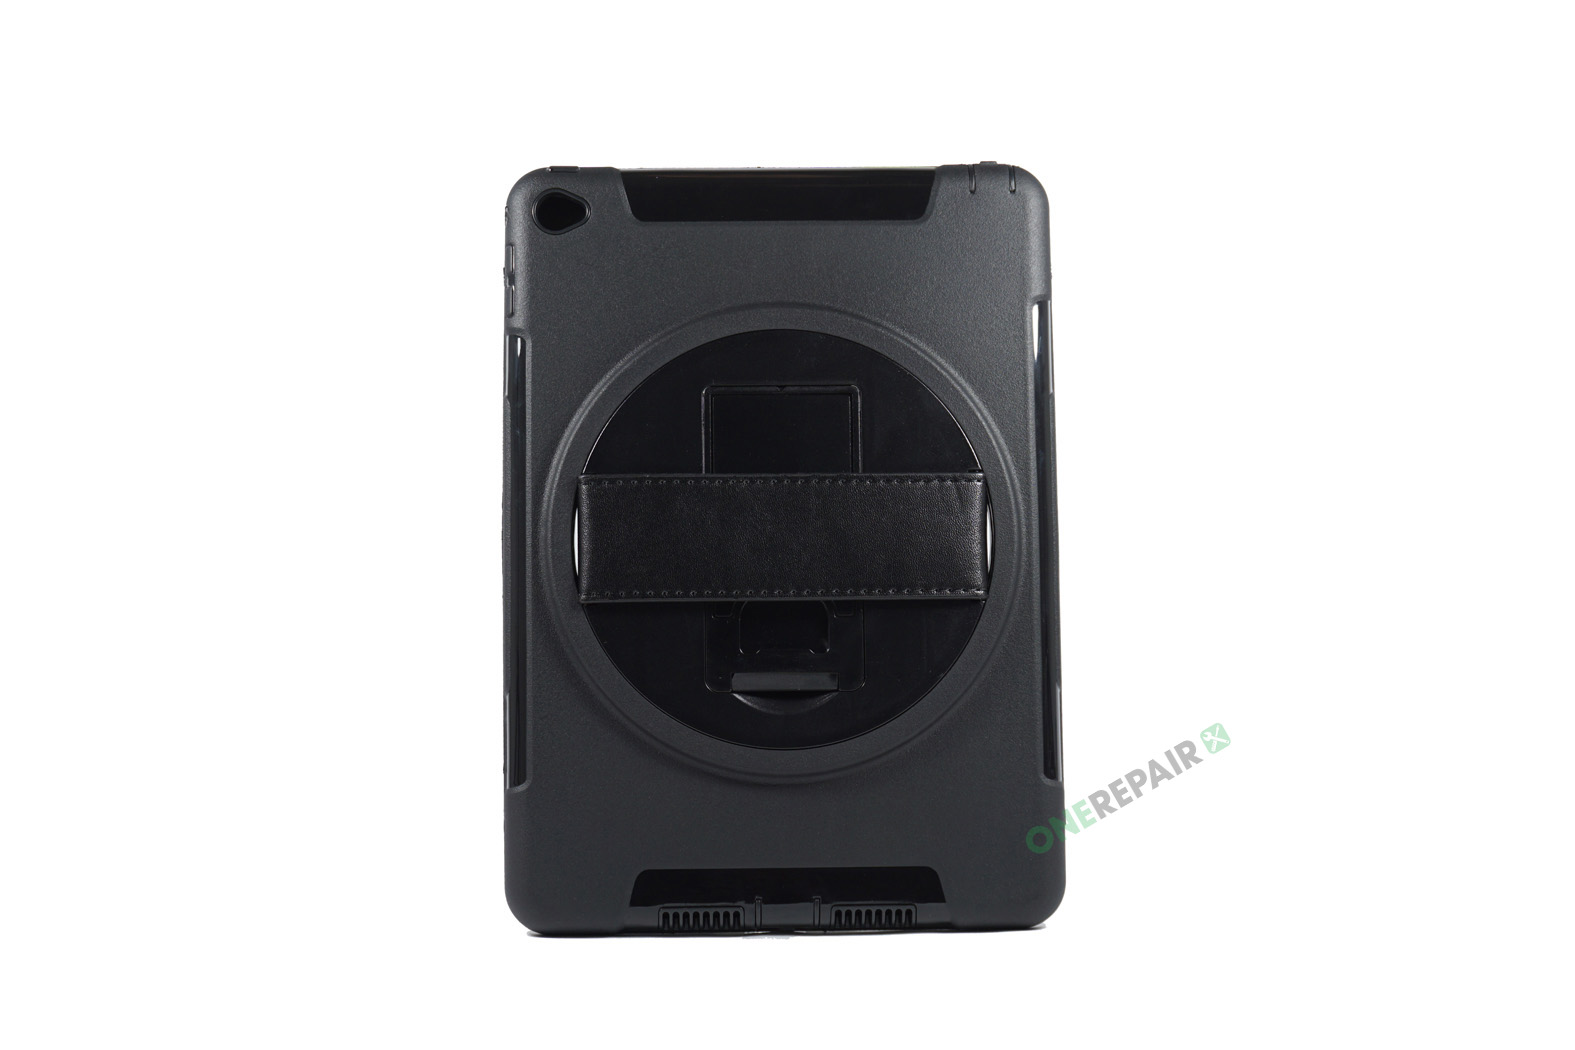 351067_351841_iPad_Air2_2_A1566_A1567_3-in-1_Thin_Boernecover_Børne_Hardcase_Cover_Sort_OneRepair_00001